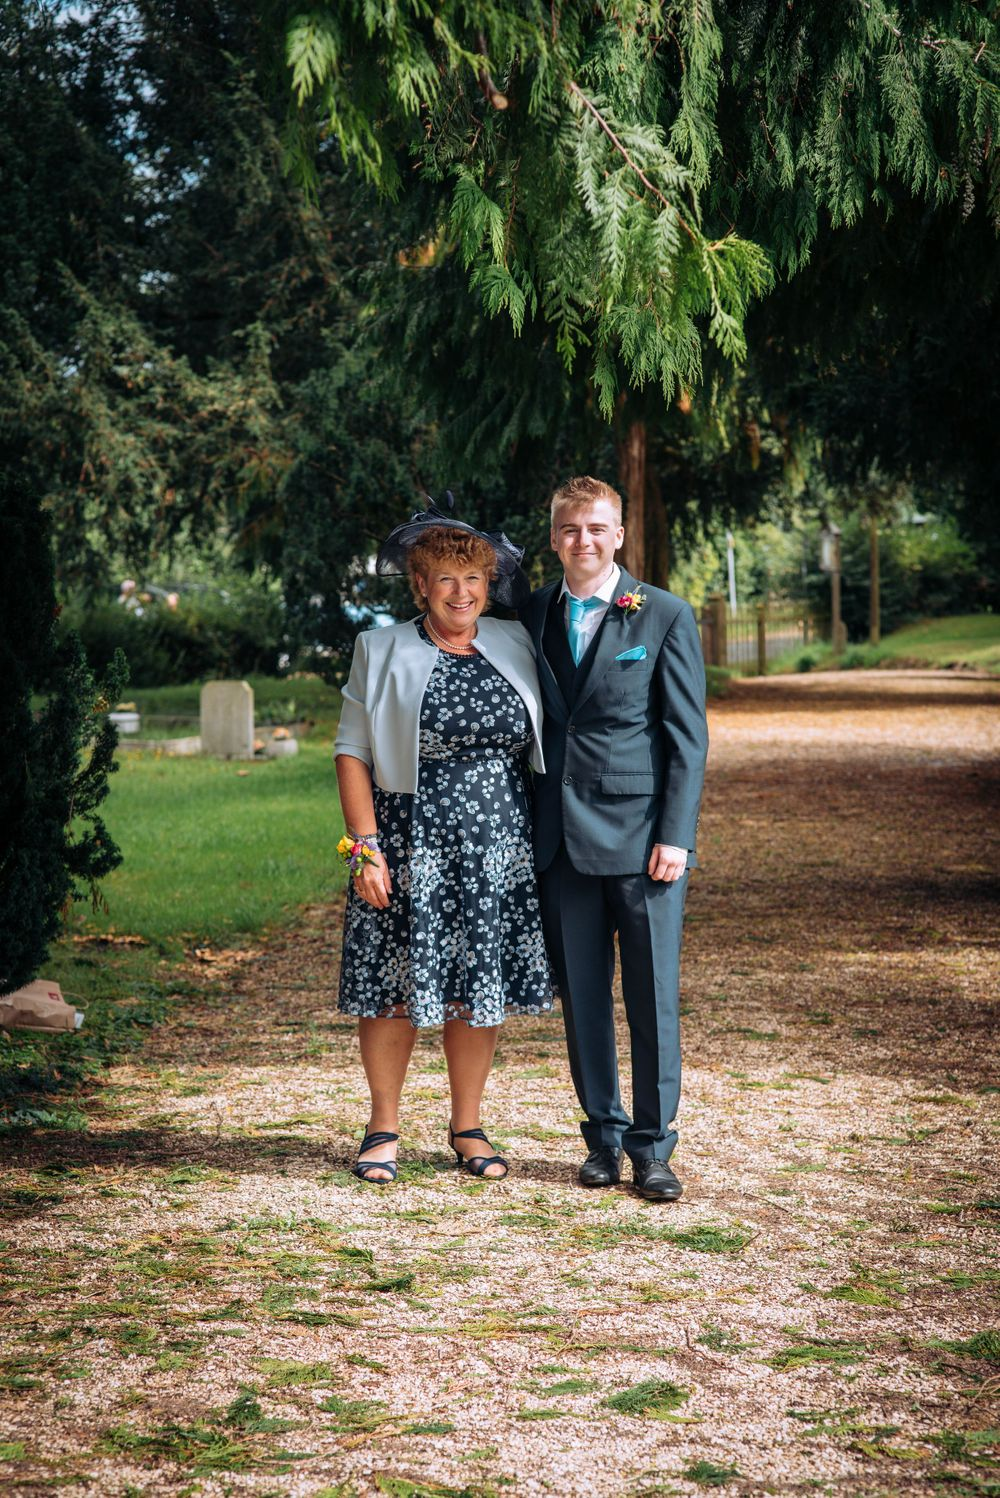 Elmore wedding by Zara Davis Photography, Gloucestershire wedding guests